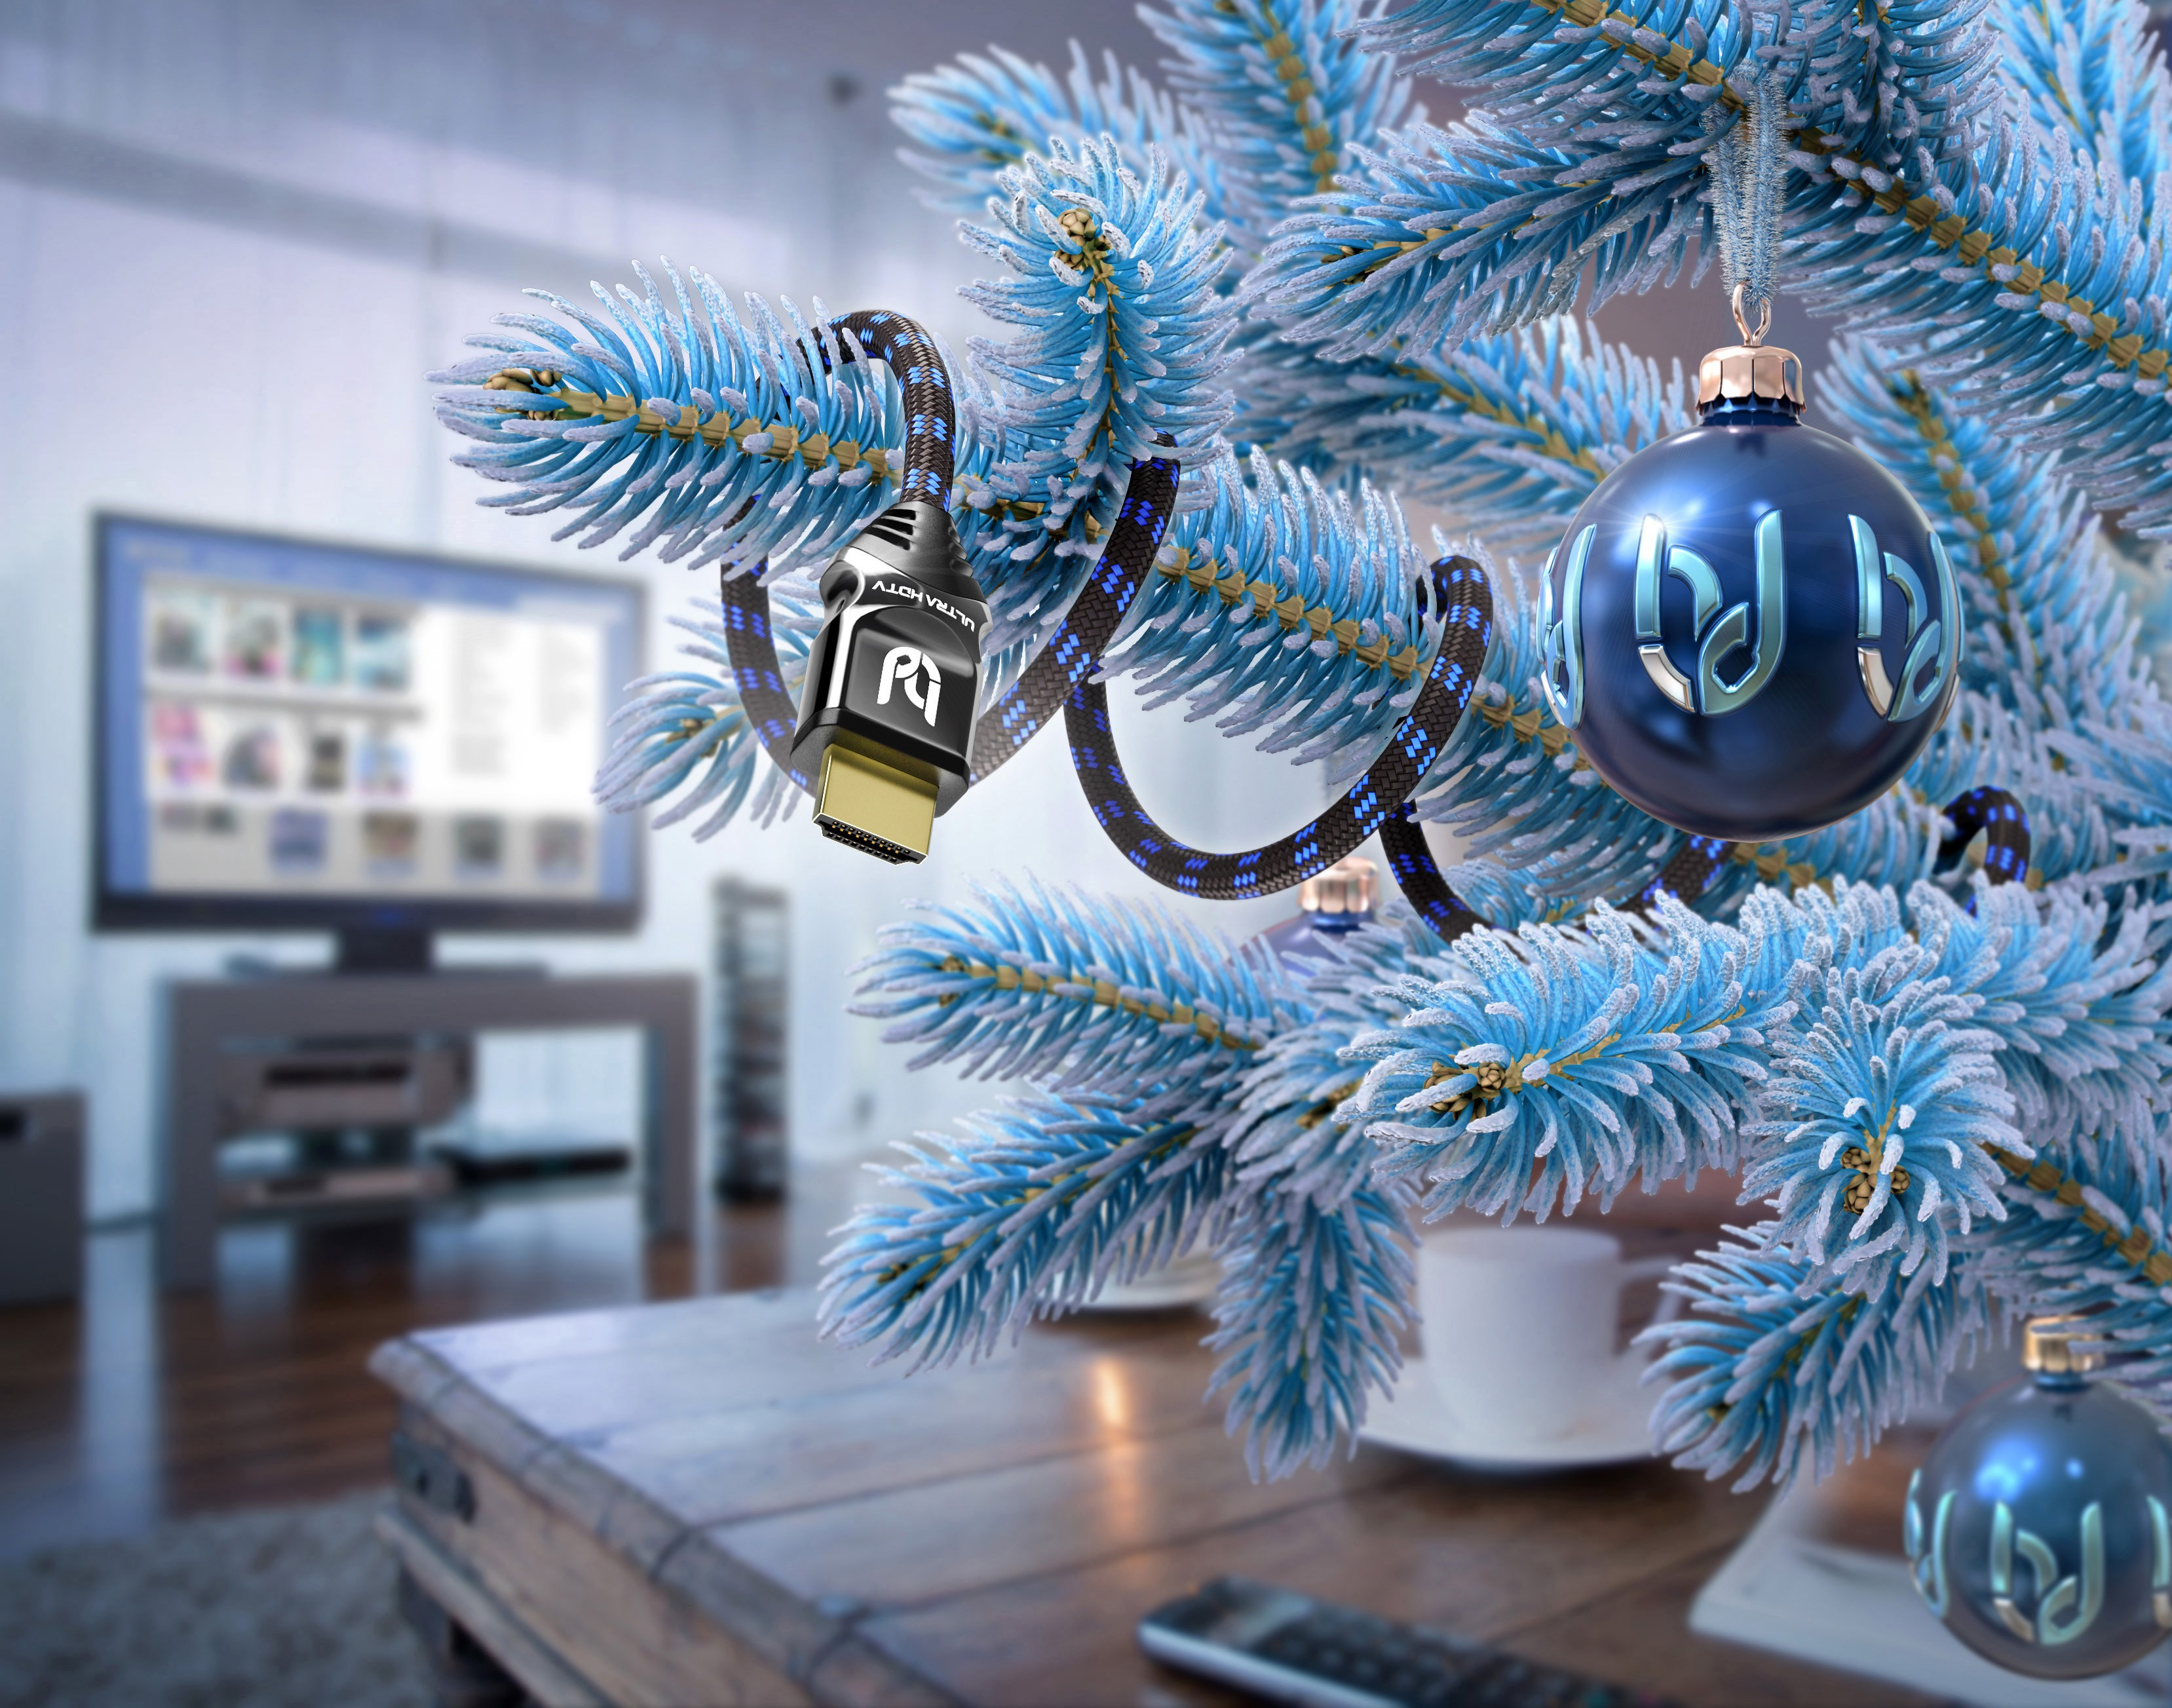 Create an HDMI cable image on a Christmas tree.